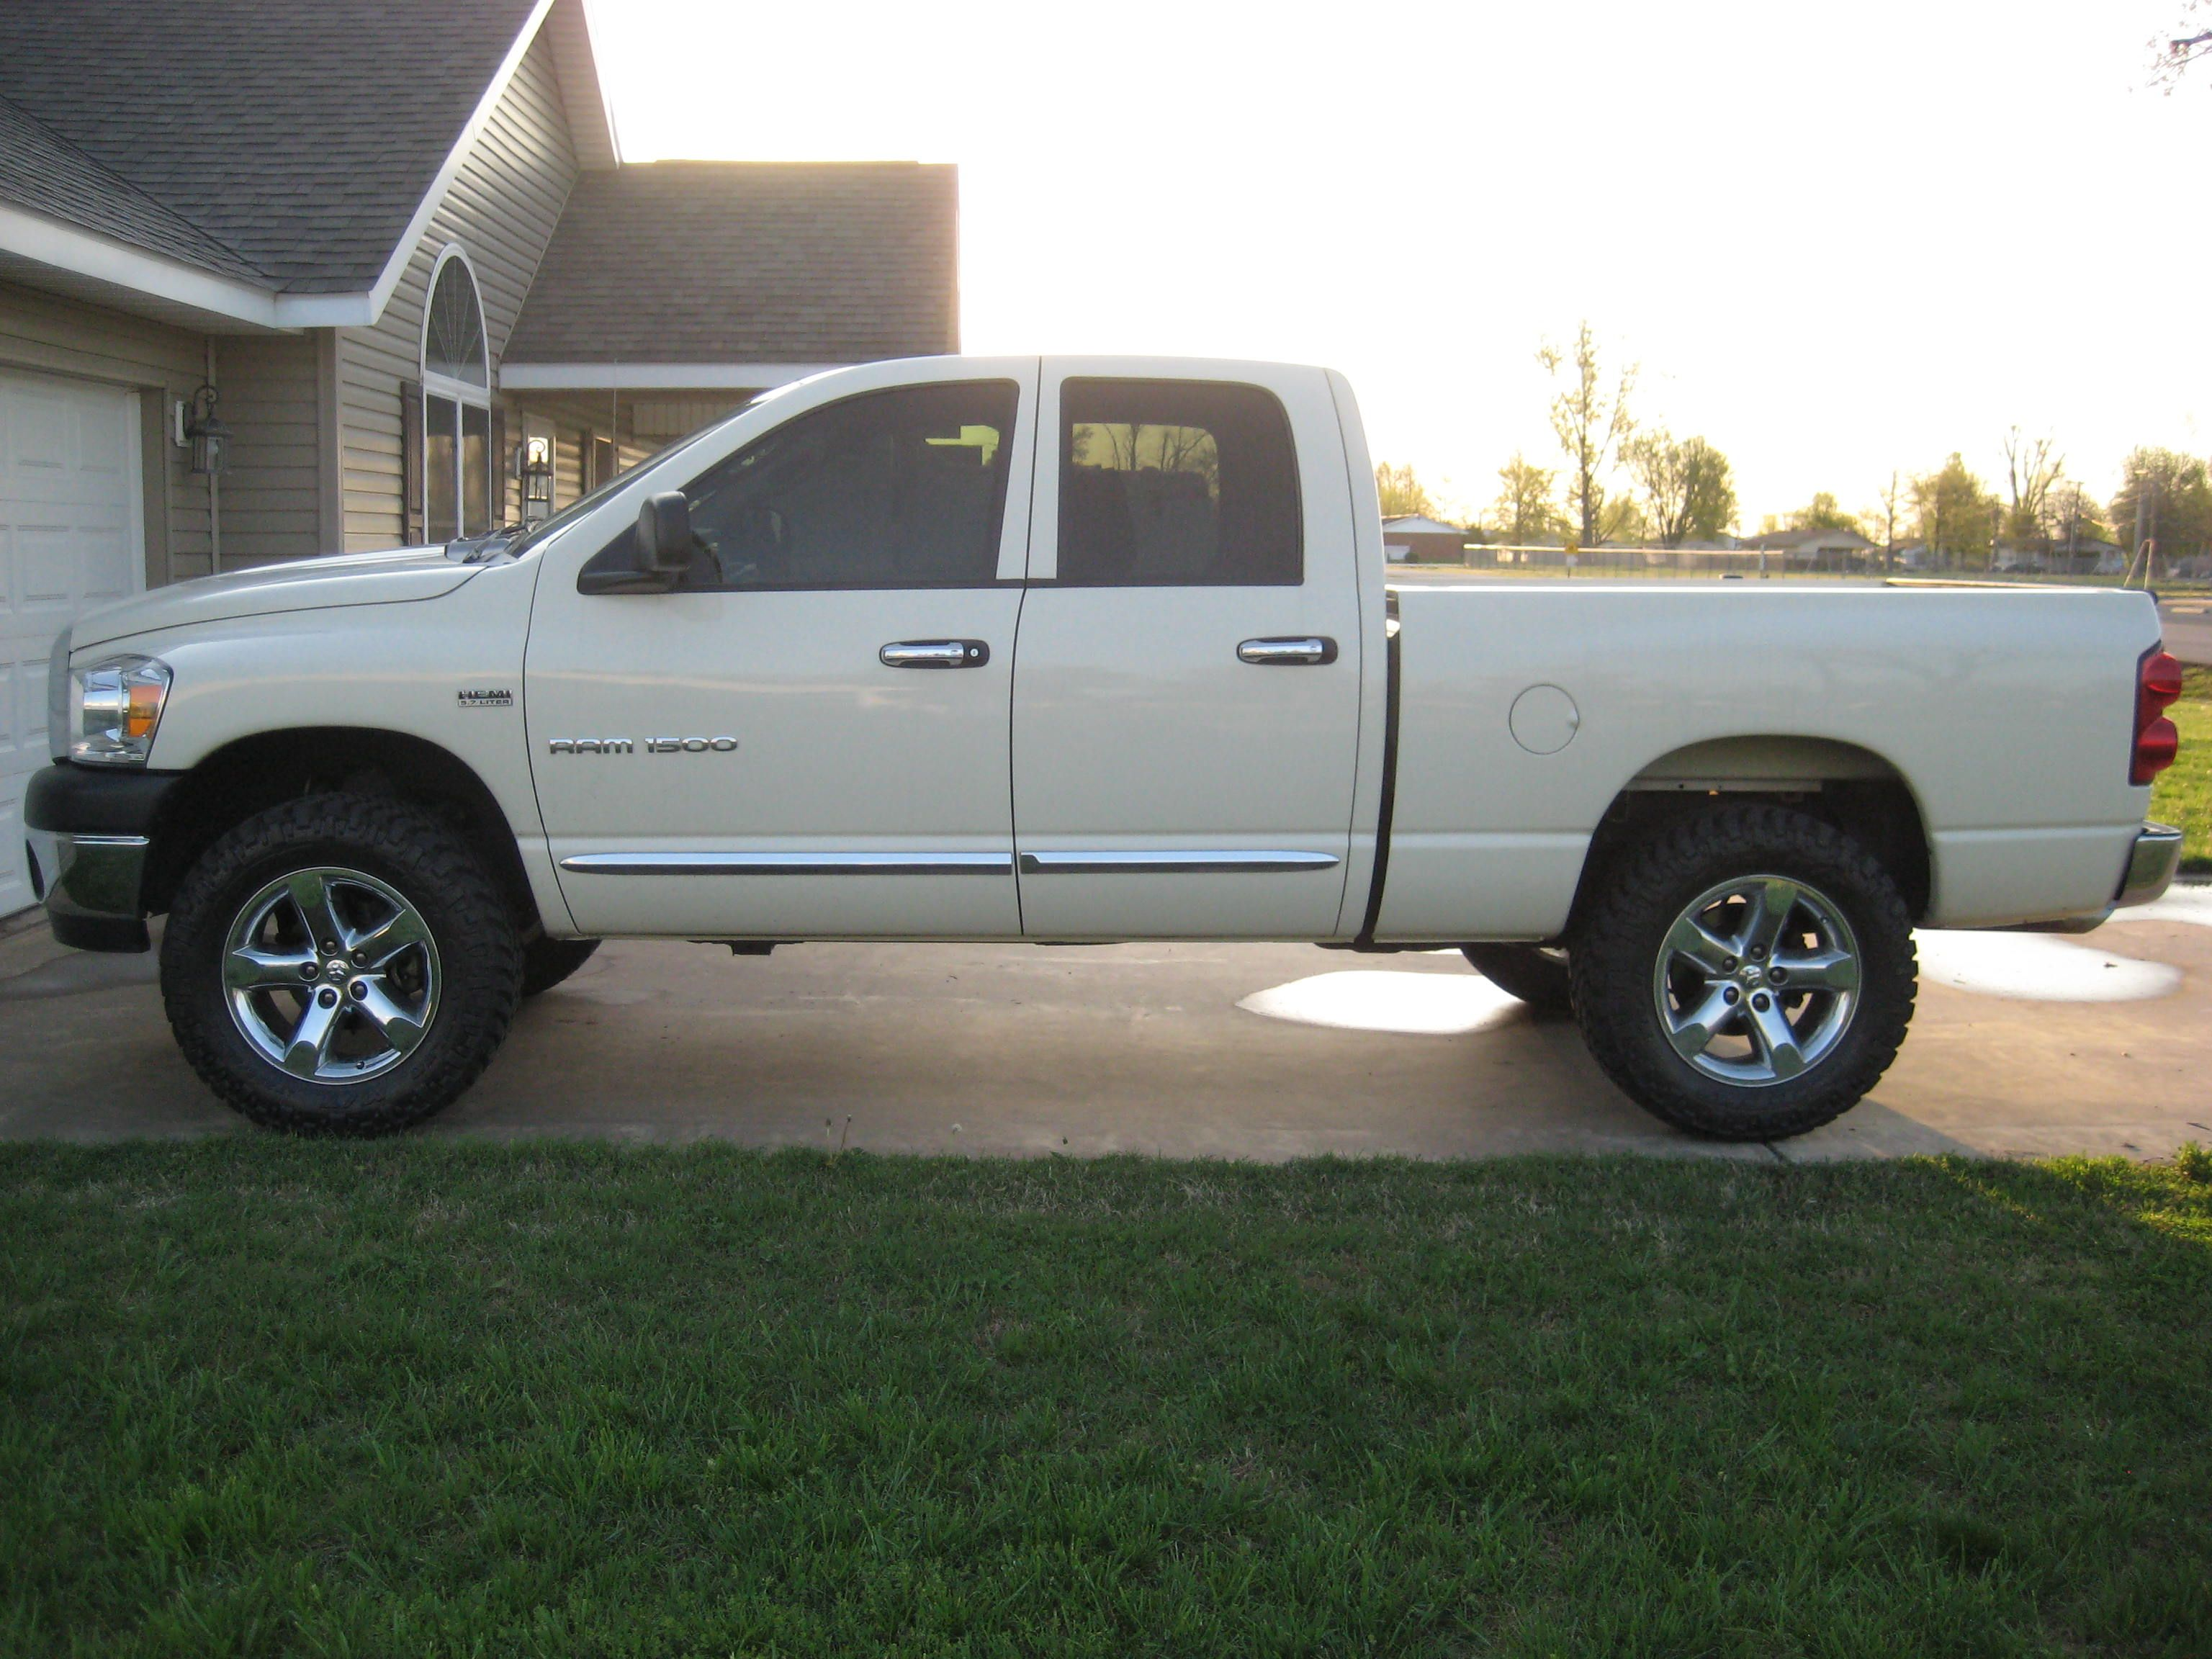 Trail grapplers 295 65 20 with 2 leveling kit